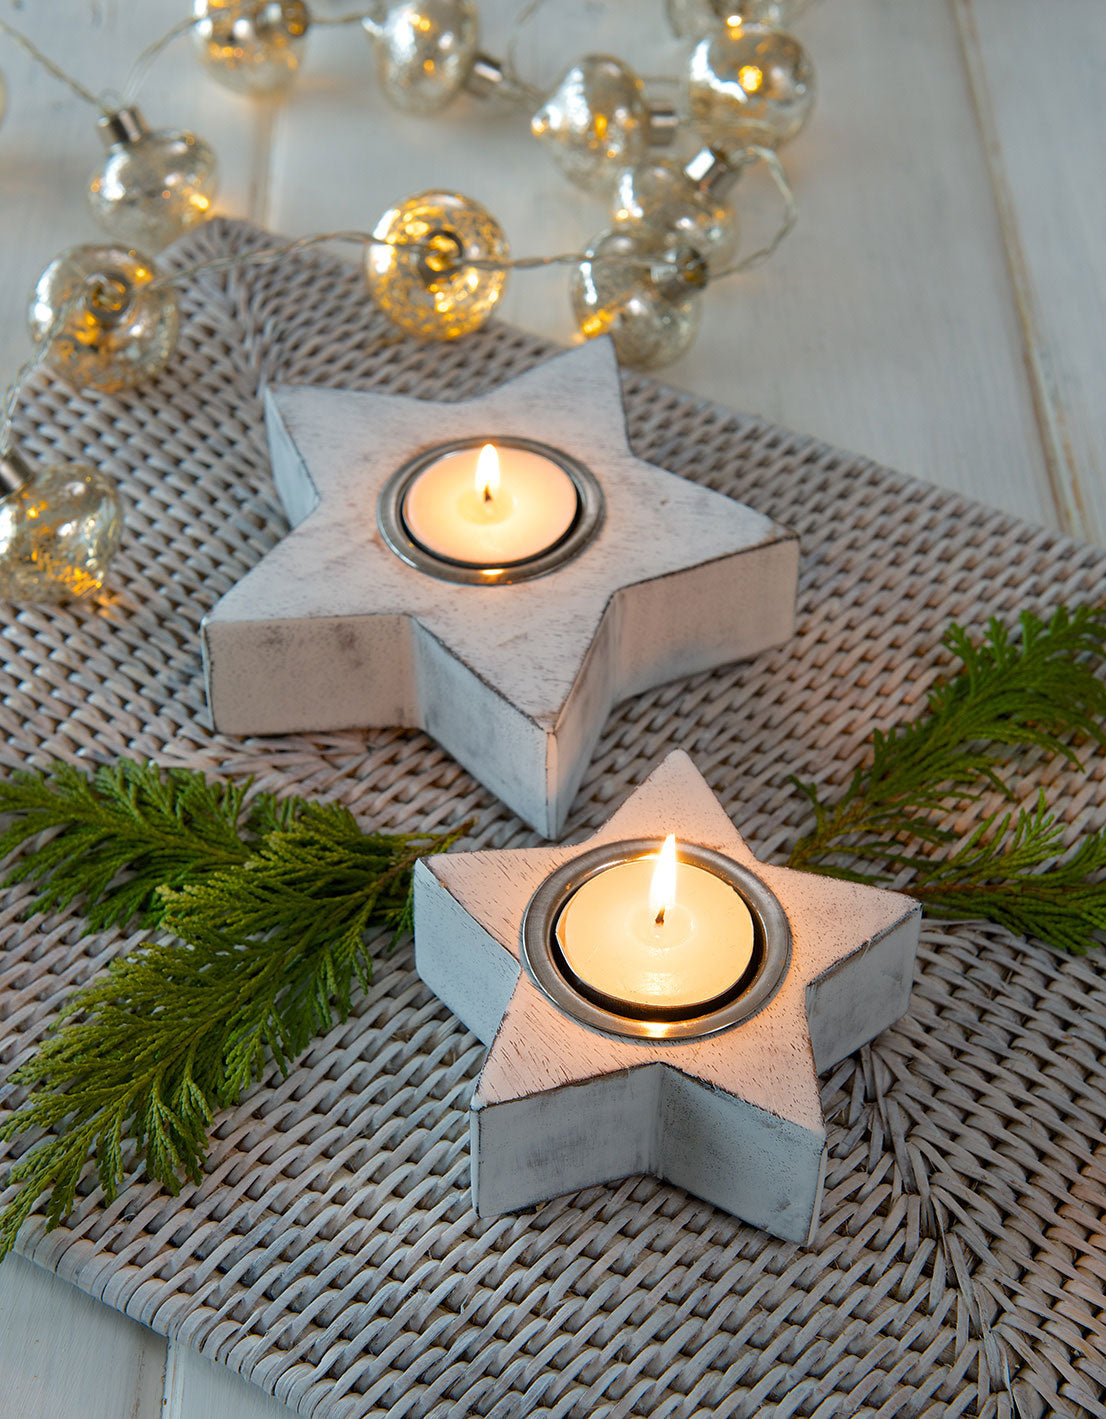 Set of 2 Star tealight holders - White or Grey